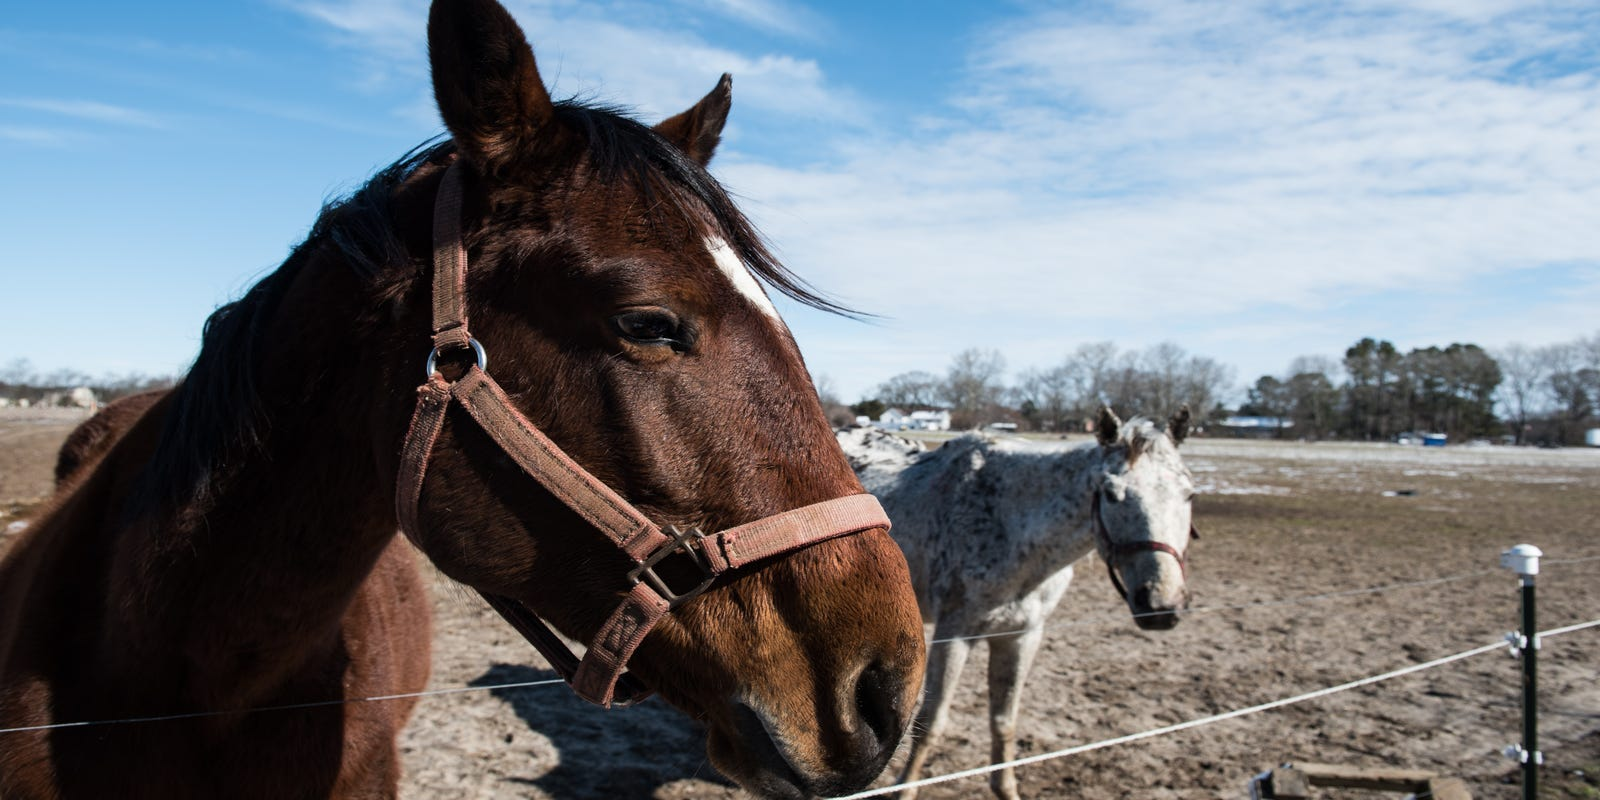 In starving horses case, why no one could help